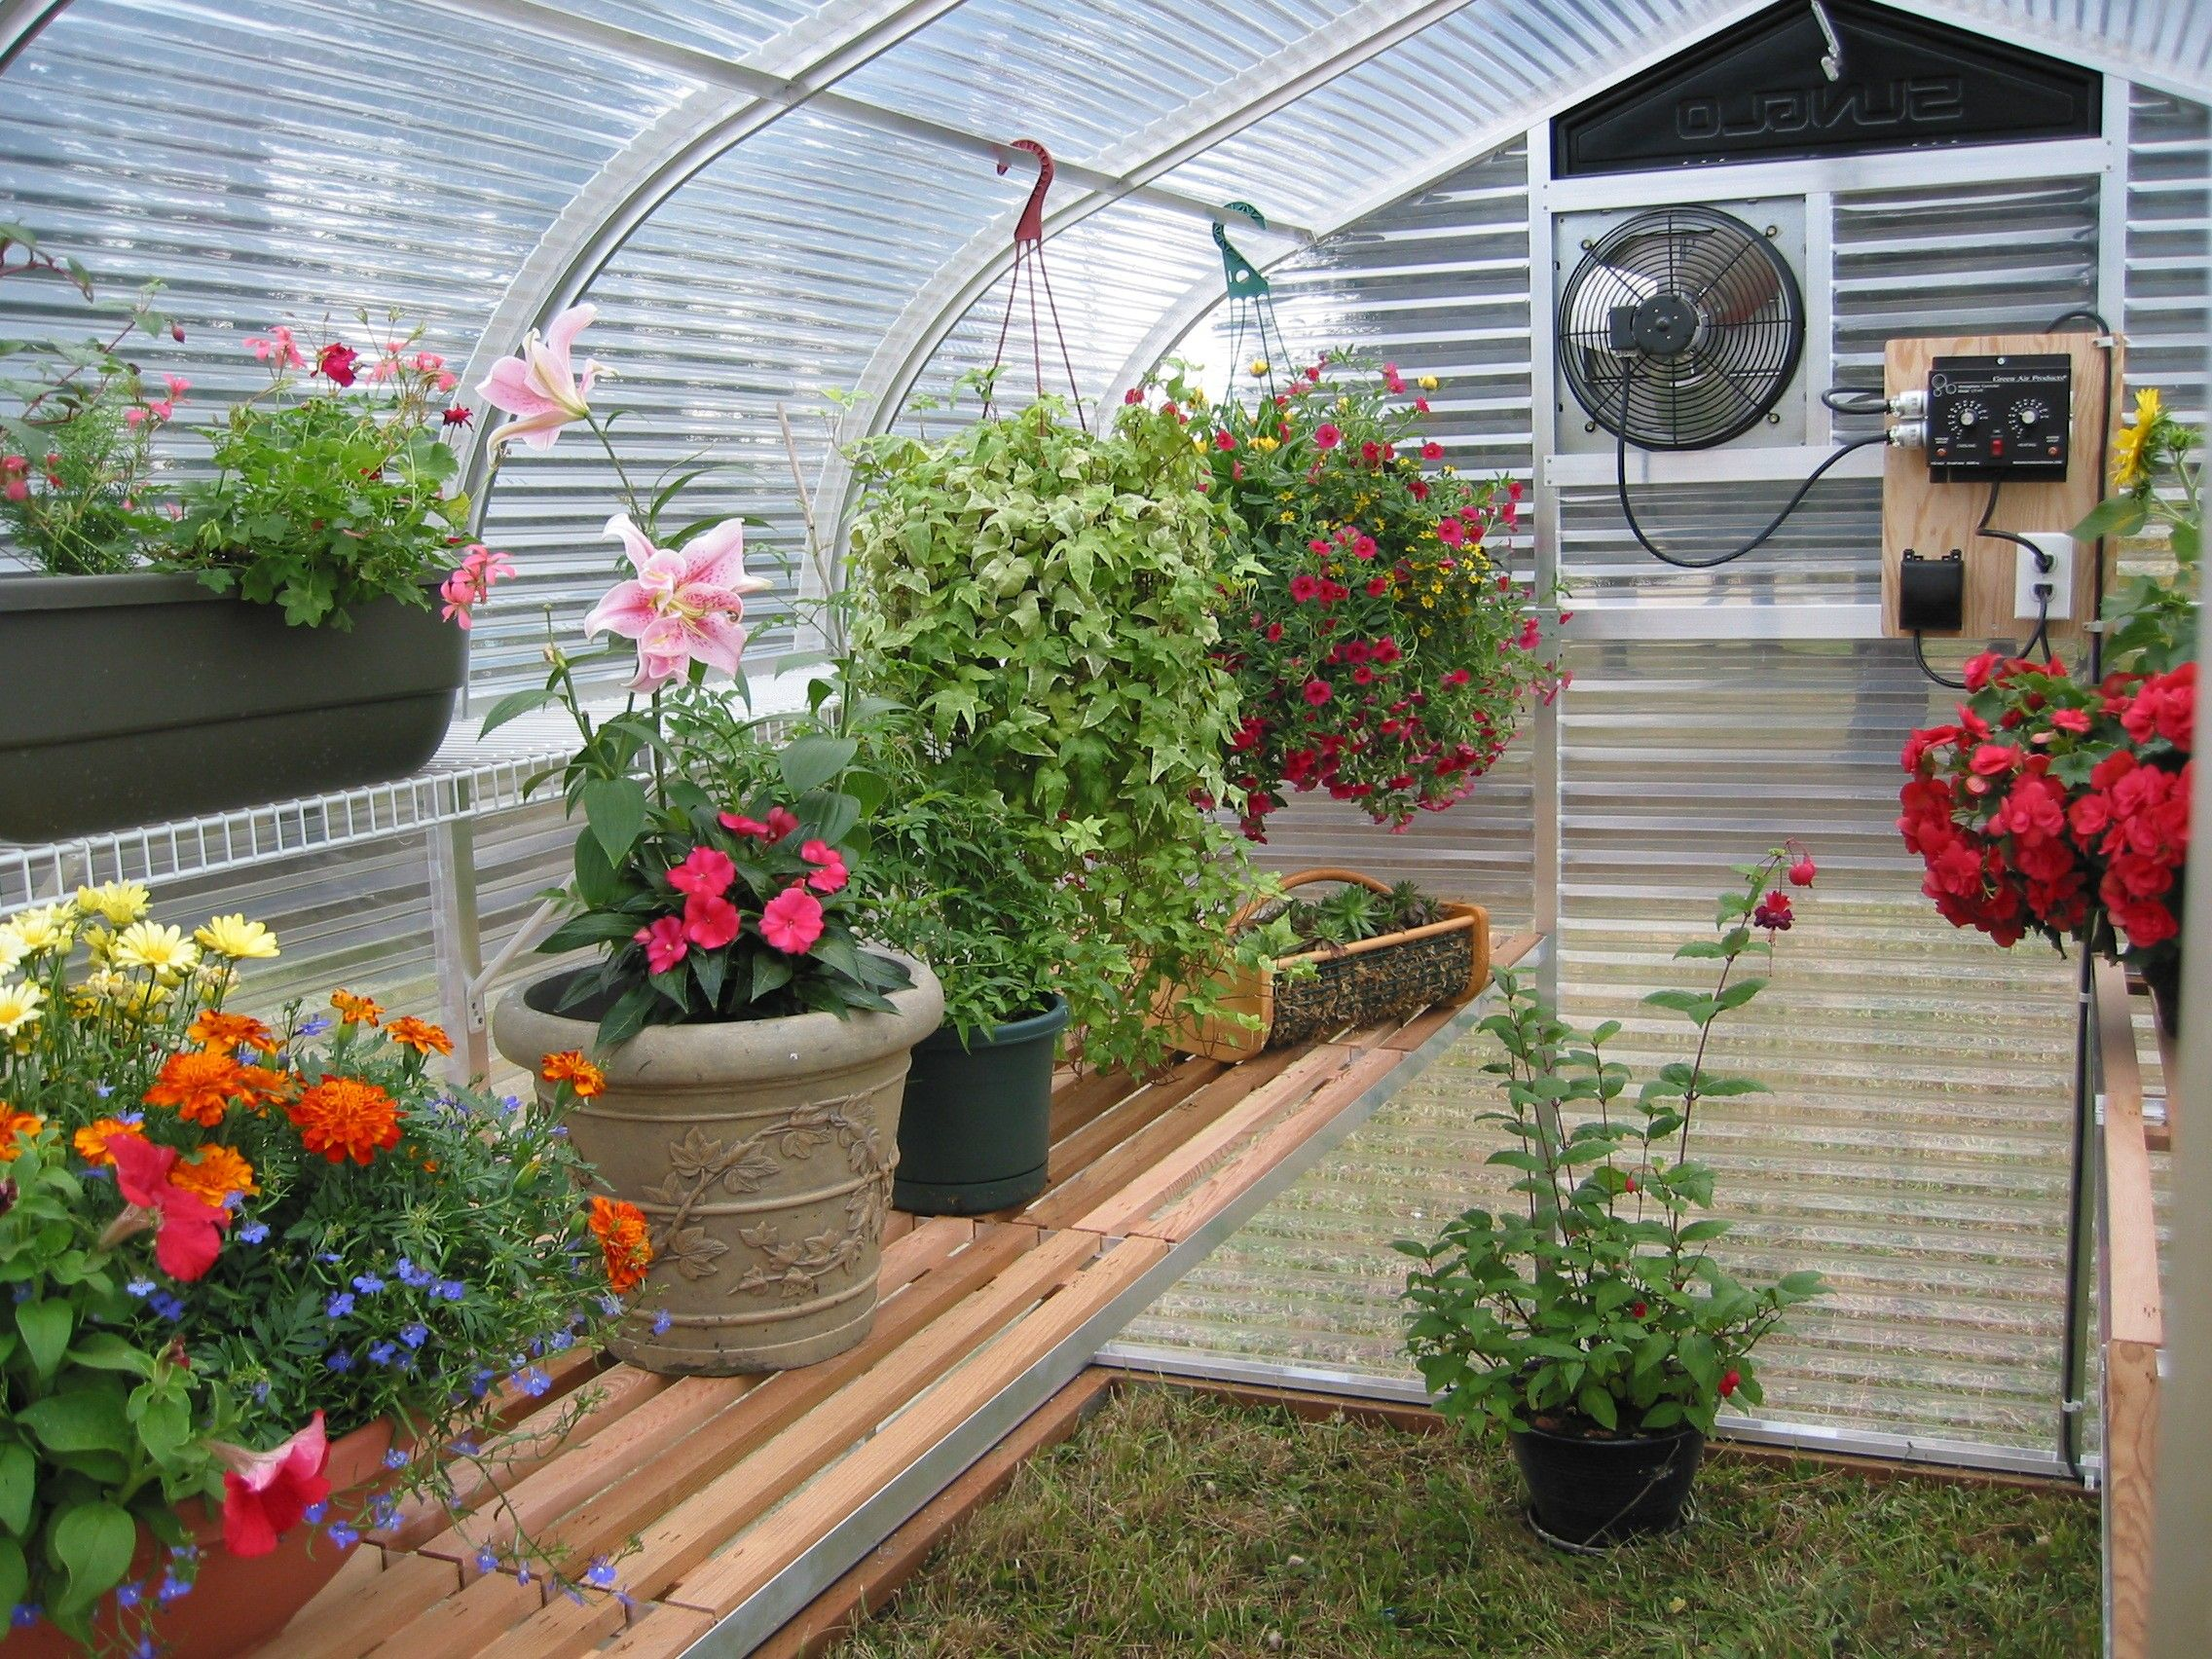 extra room garden only juliana your eu a not alu many greenhouse great for gardening add will can are over but plants nordal yes reasons and oase an use wintering there own to blog it you